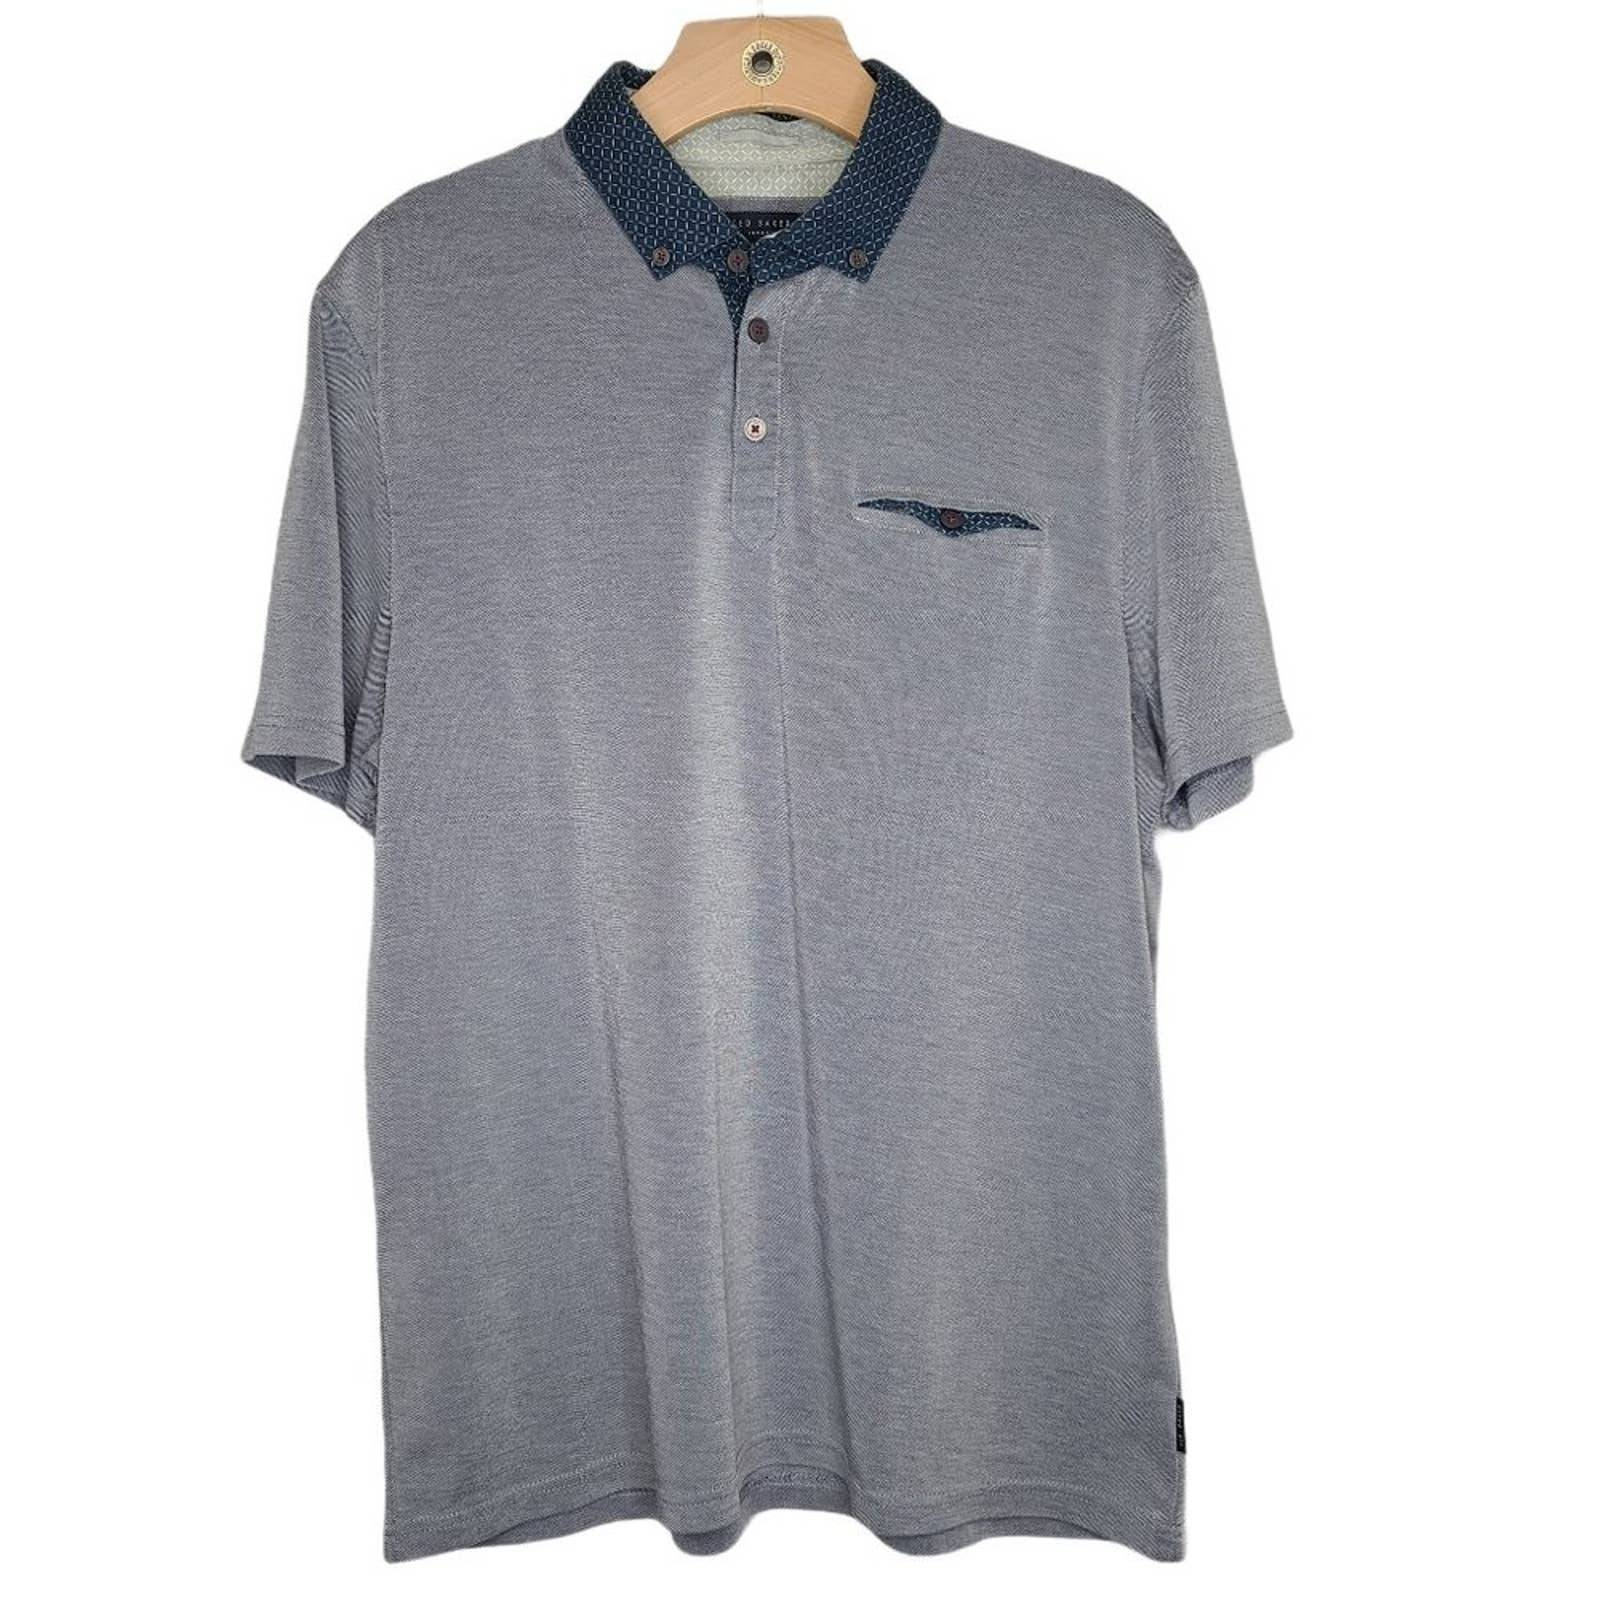 Ted Baker Polo Shirt w/ Pocket 5 / XL